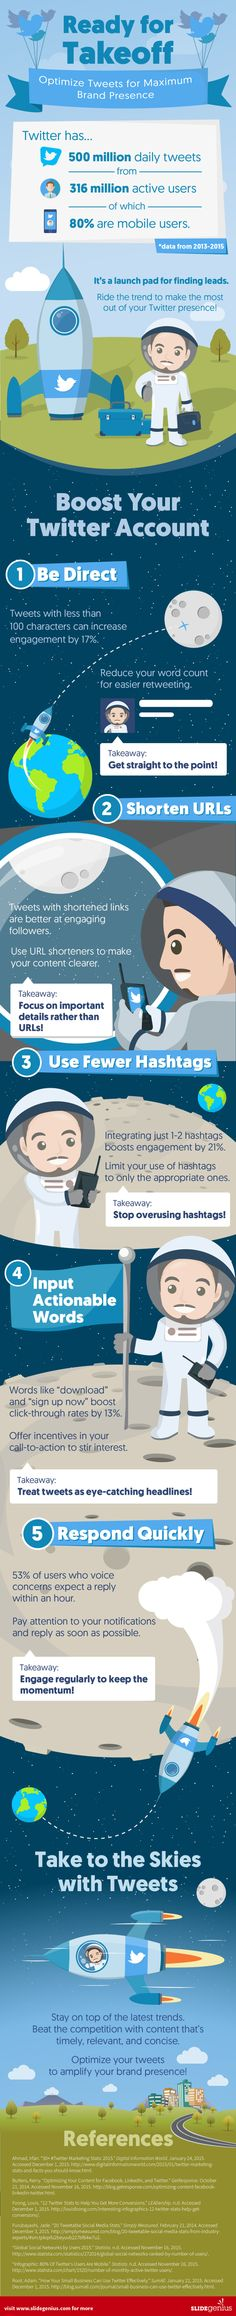 Twitter Marketing in 2016 How to Optimise Tweets & Generate Engagement